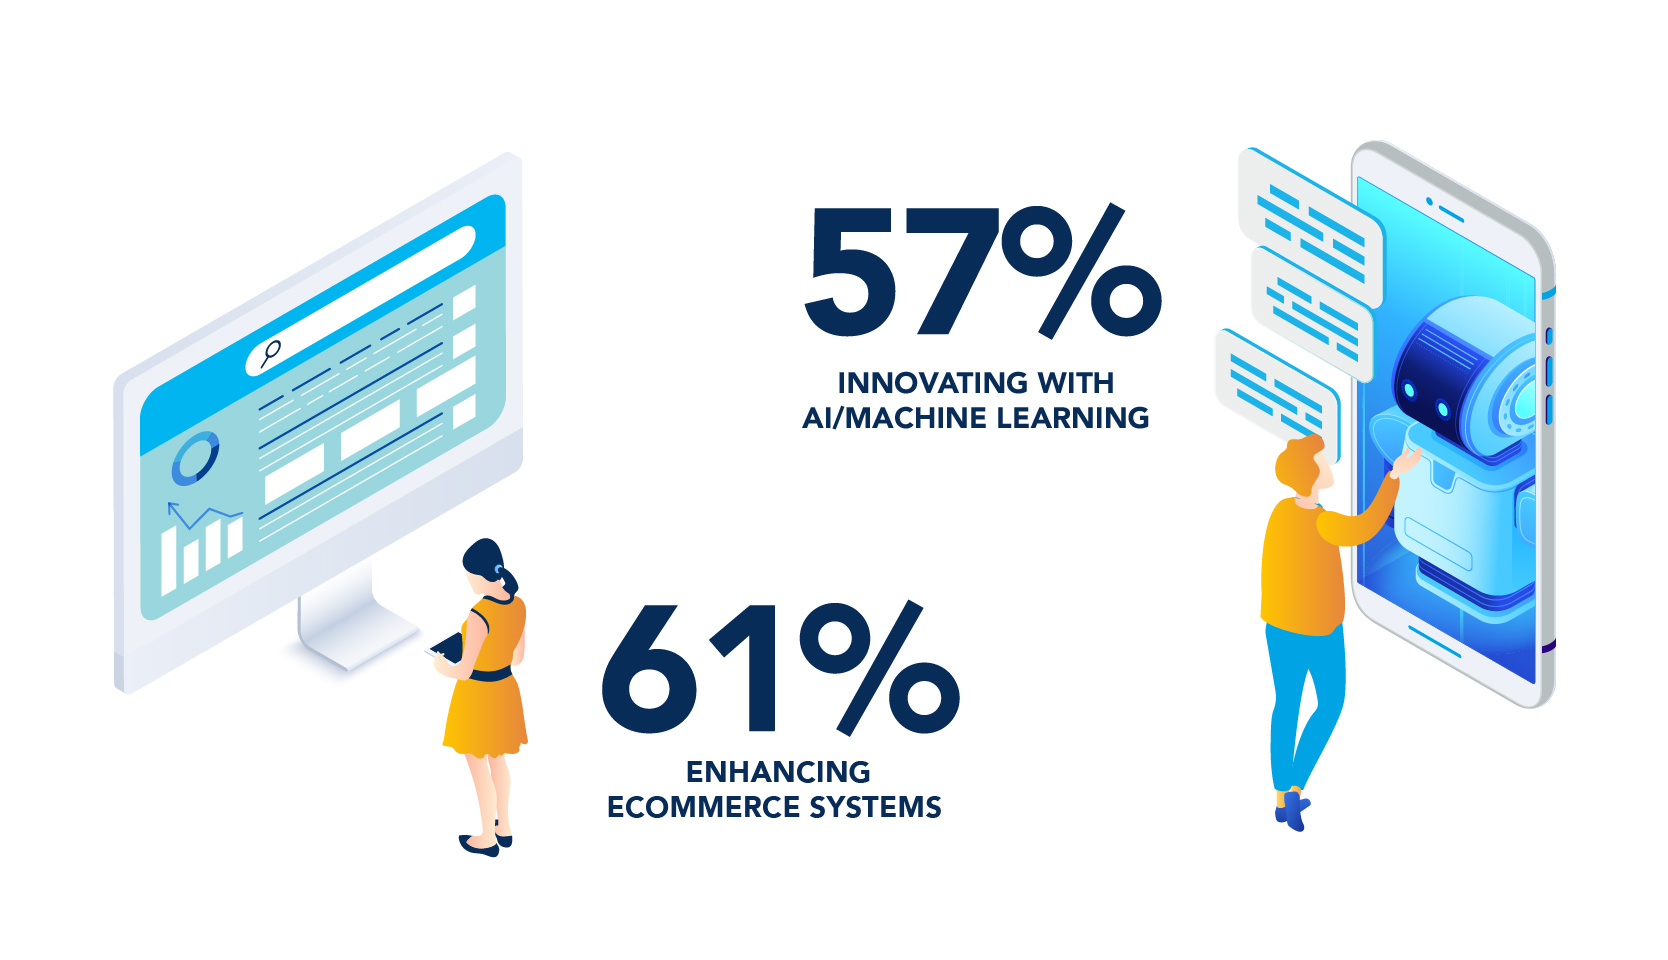 Airlines innovationg with AI and Machine Learning and enhancing enhancing eCommerce systems